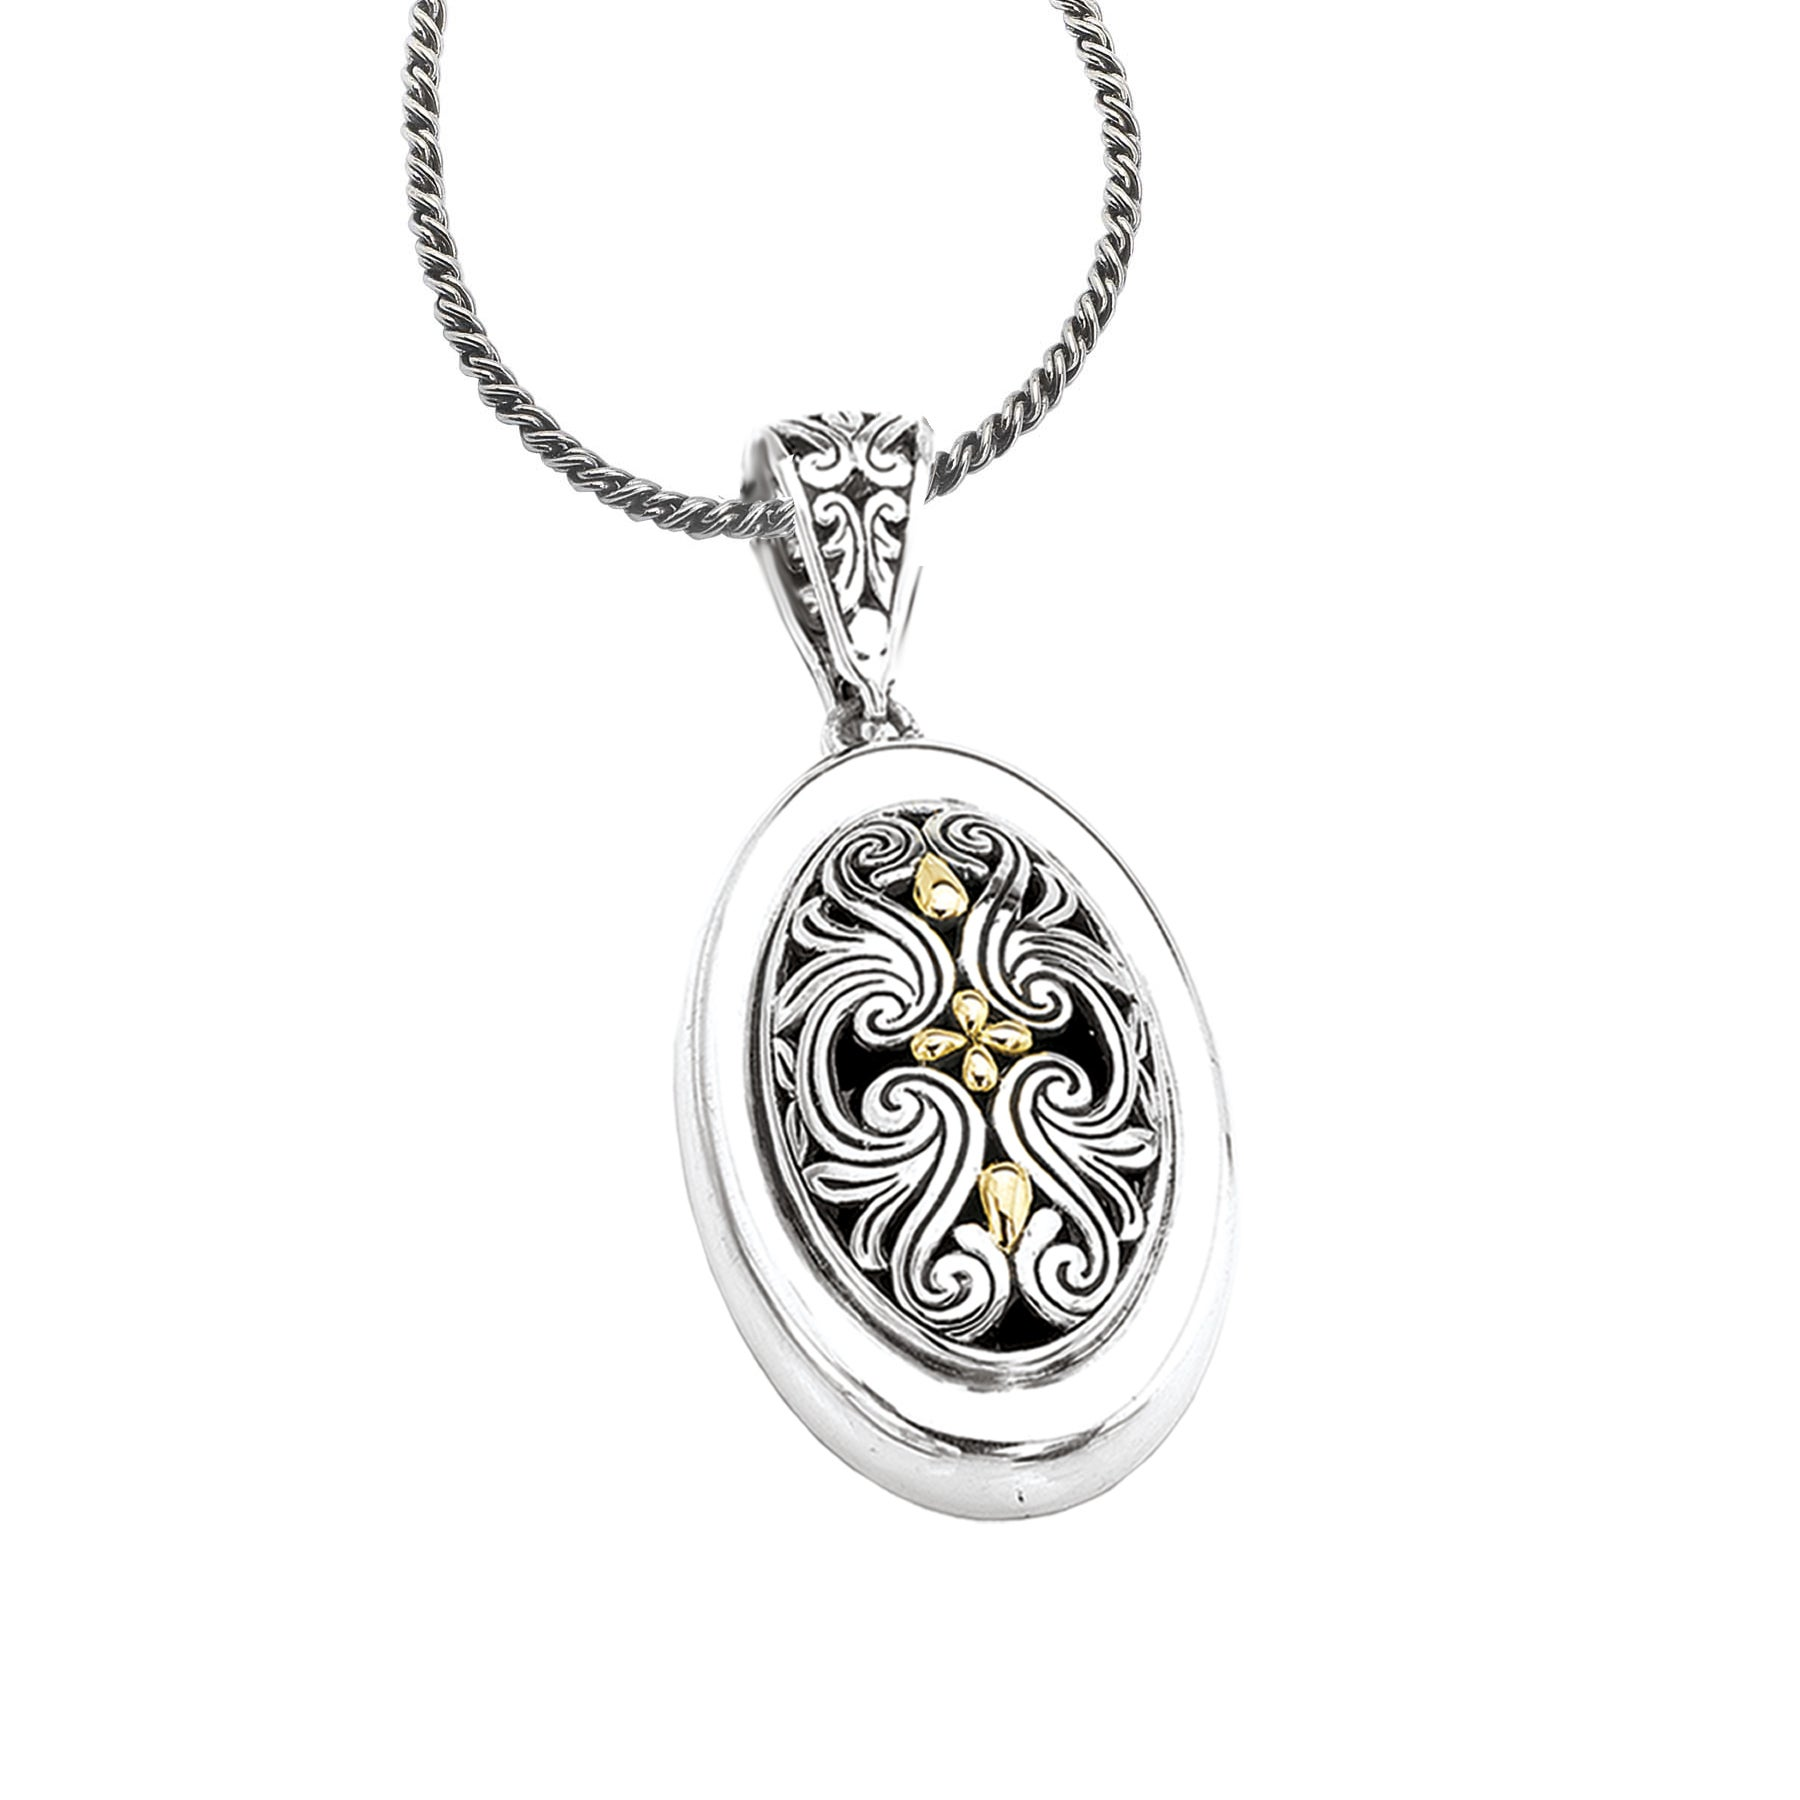 Avanti Sterling Silver and 18k Gold Oval Filigree Necklace